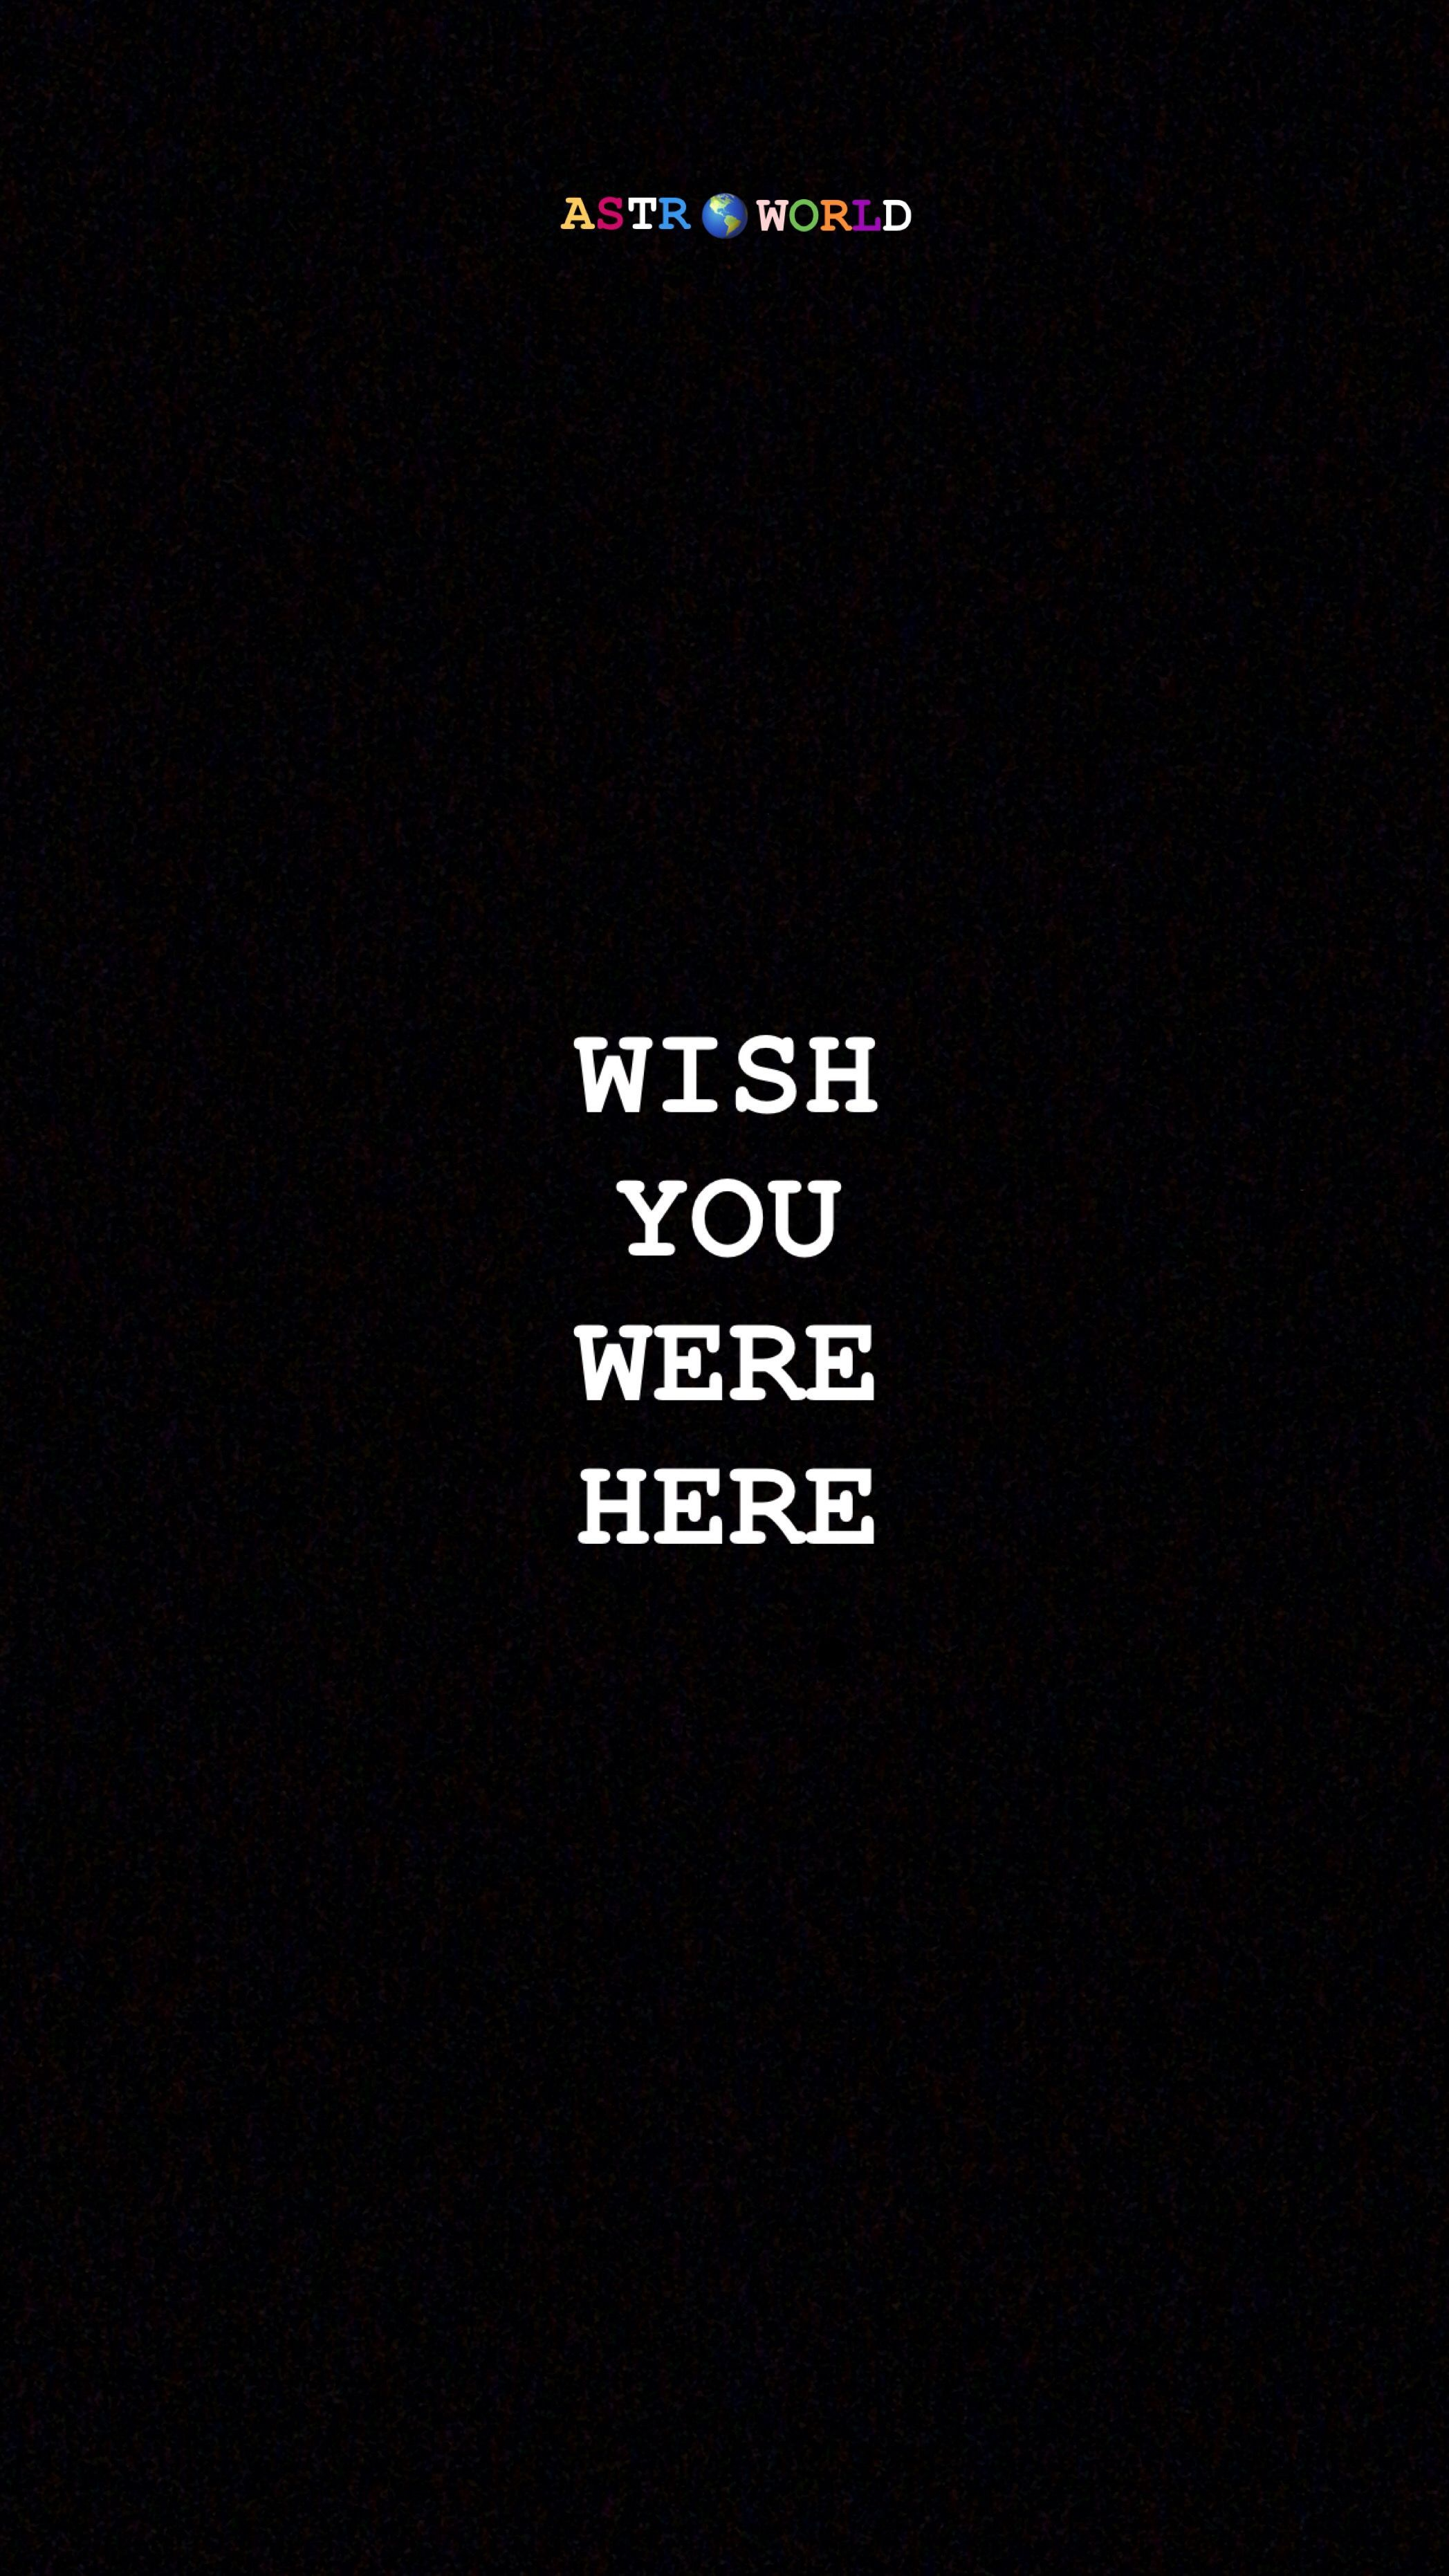 Wish You Were Here Wallpapers Top Free Wish You Were Here